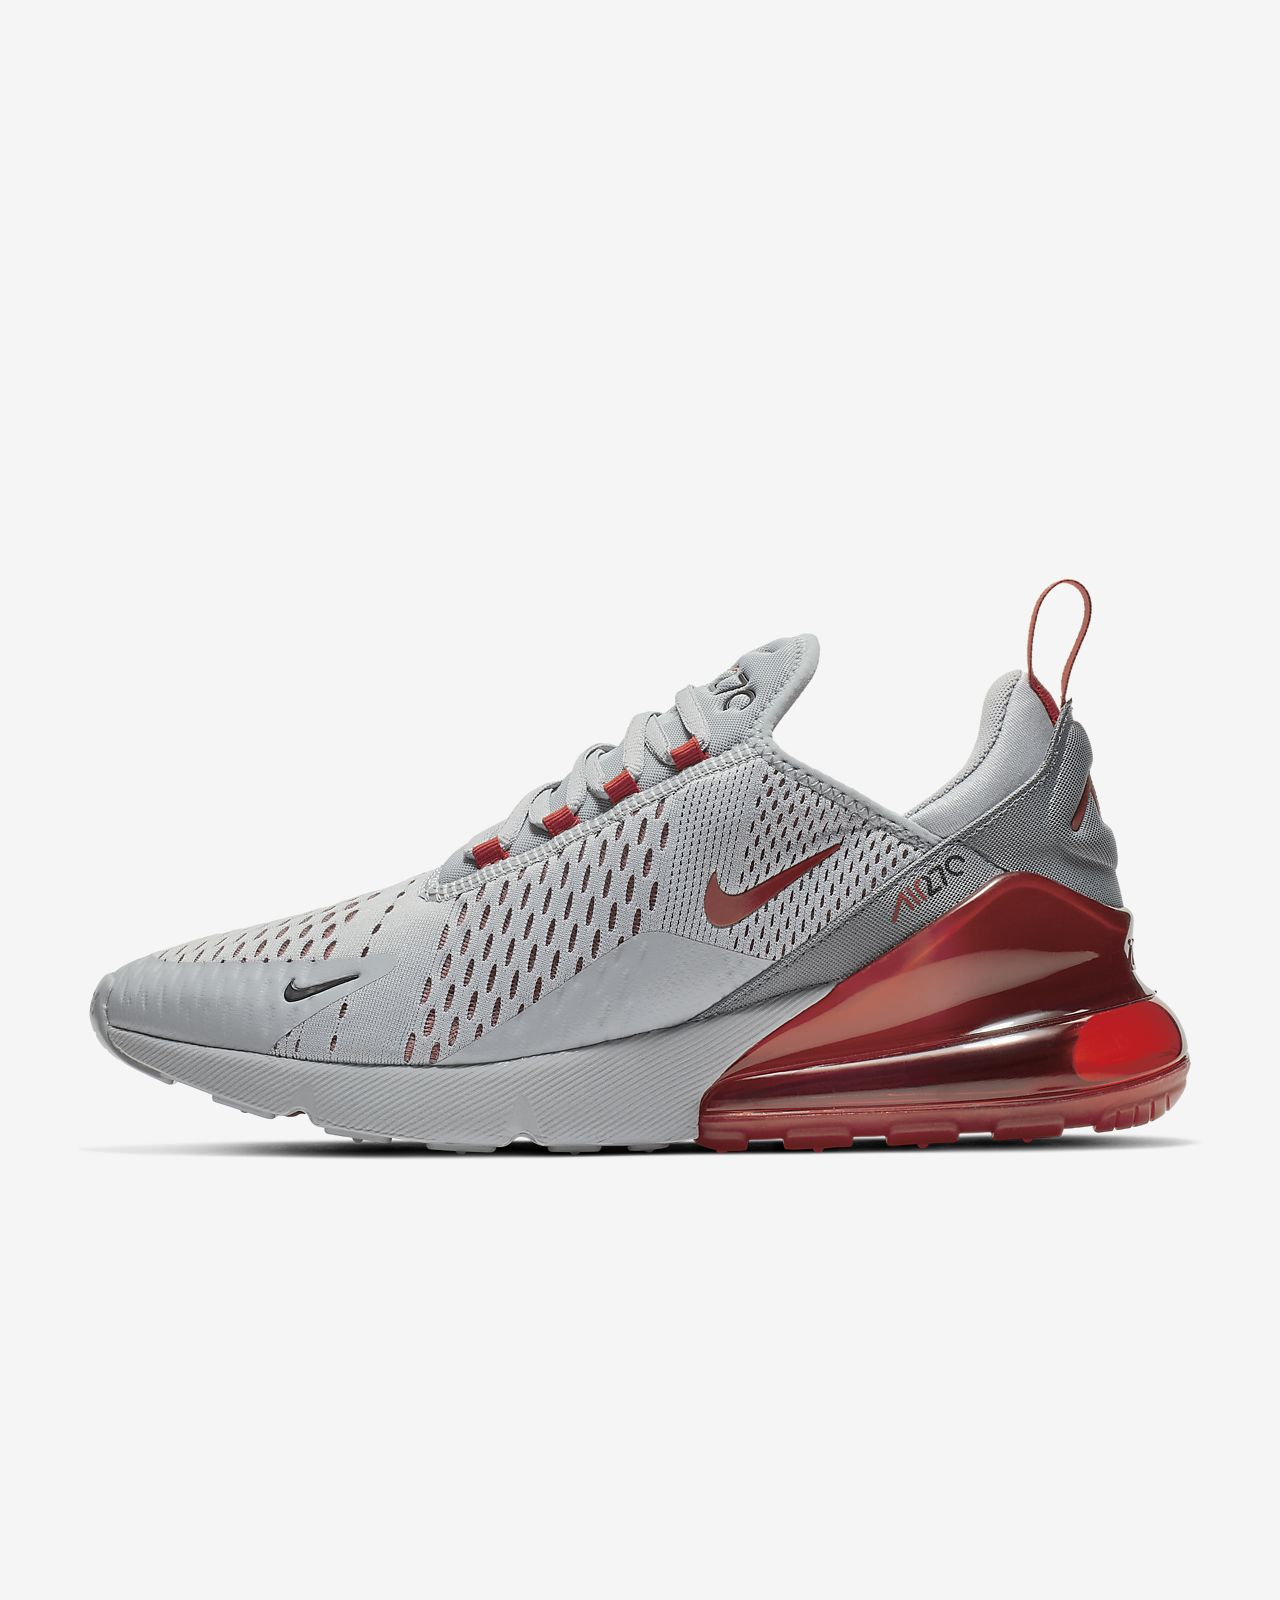 cheaper 580d2 d7ec2 Nike Air Max 270